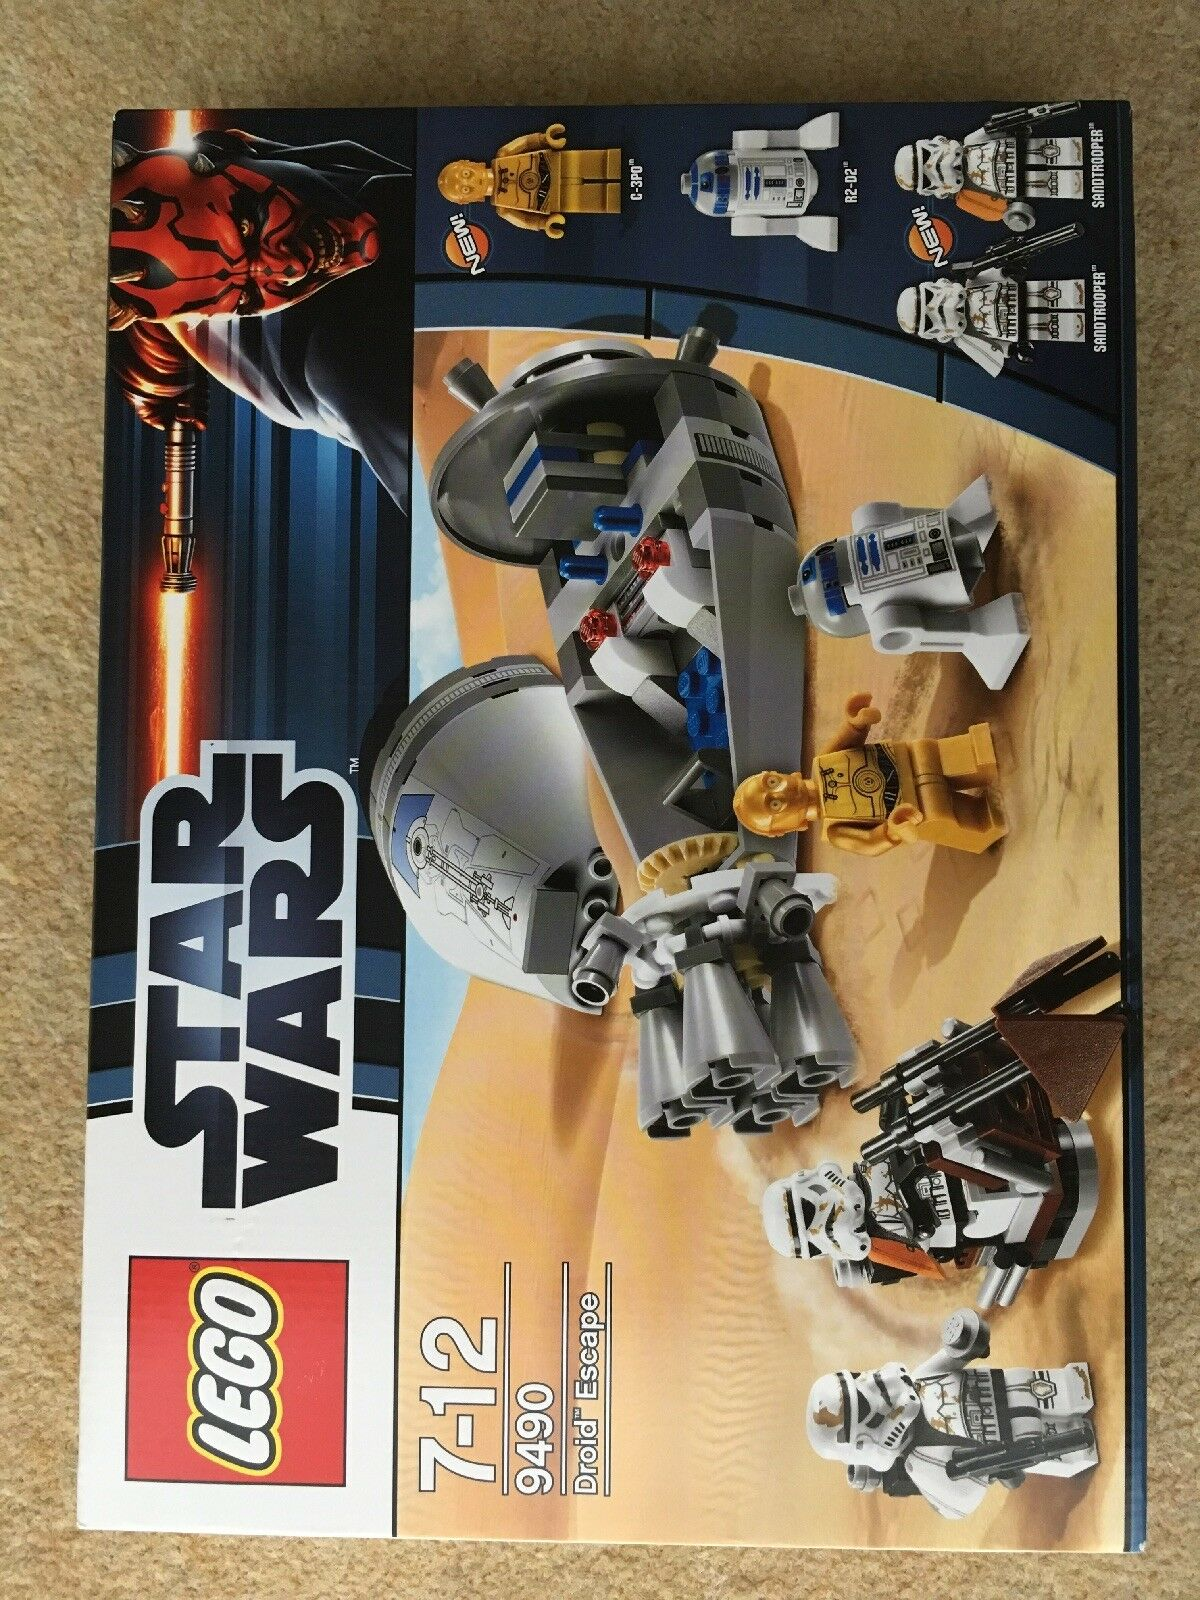 Lego 9490 - Star wars Droid Escape - 2012 Factory sealed - New